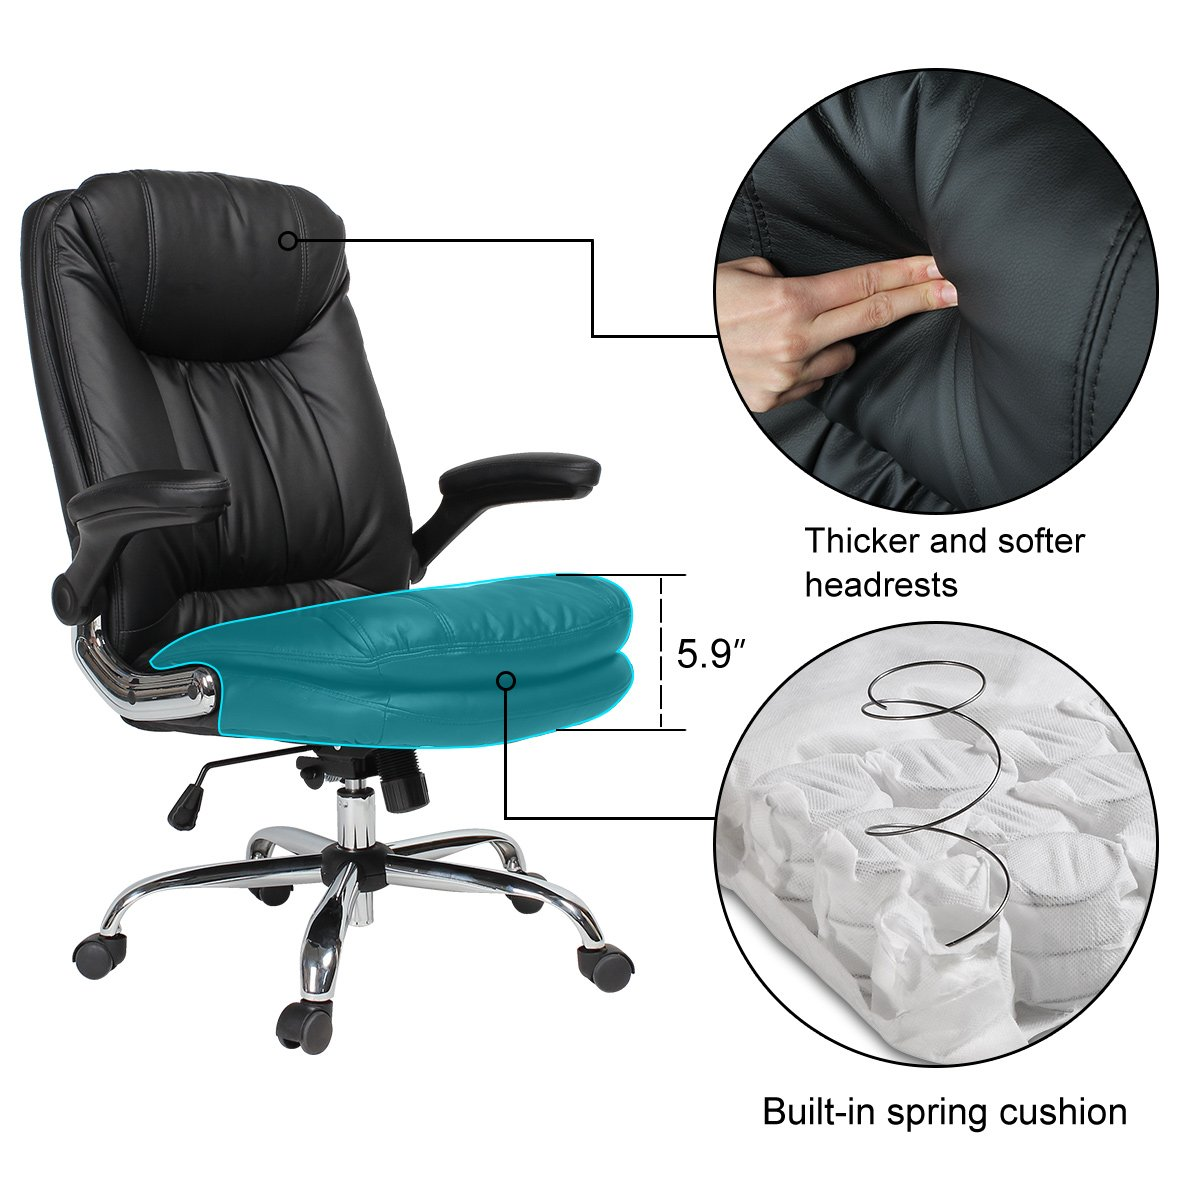 YAMASORO Ergonomic Home Office Chair with Flip-Up Arms and Comfy Headrest PU Leather High-Back Computer Desk Chair Big and Tall Capacity 330lbs Black by YAMASORO (Image #6)